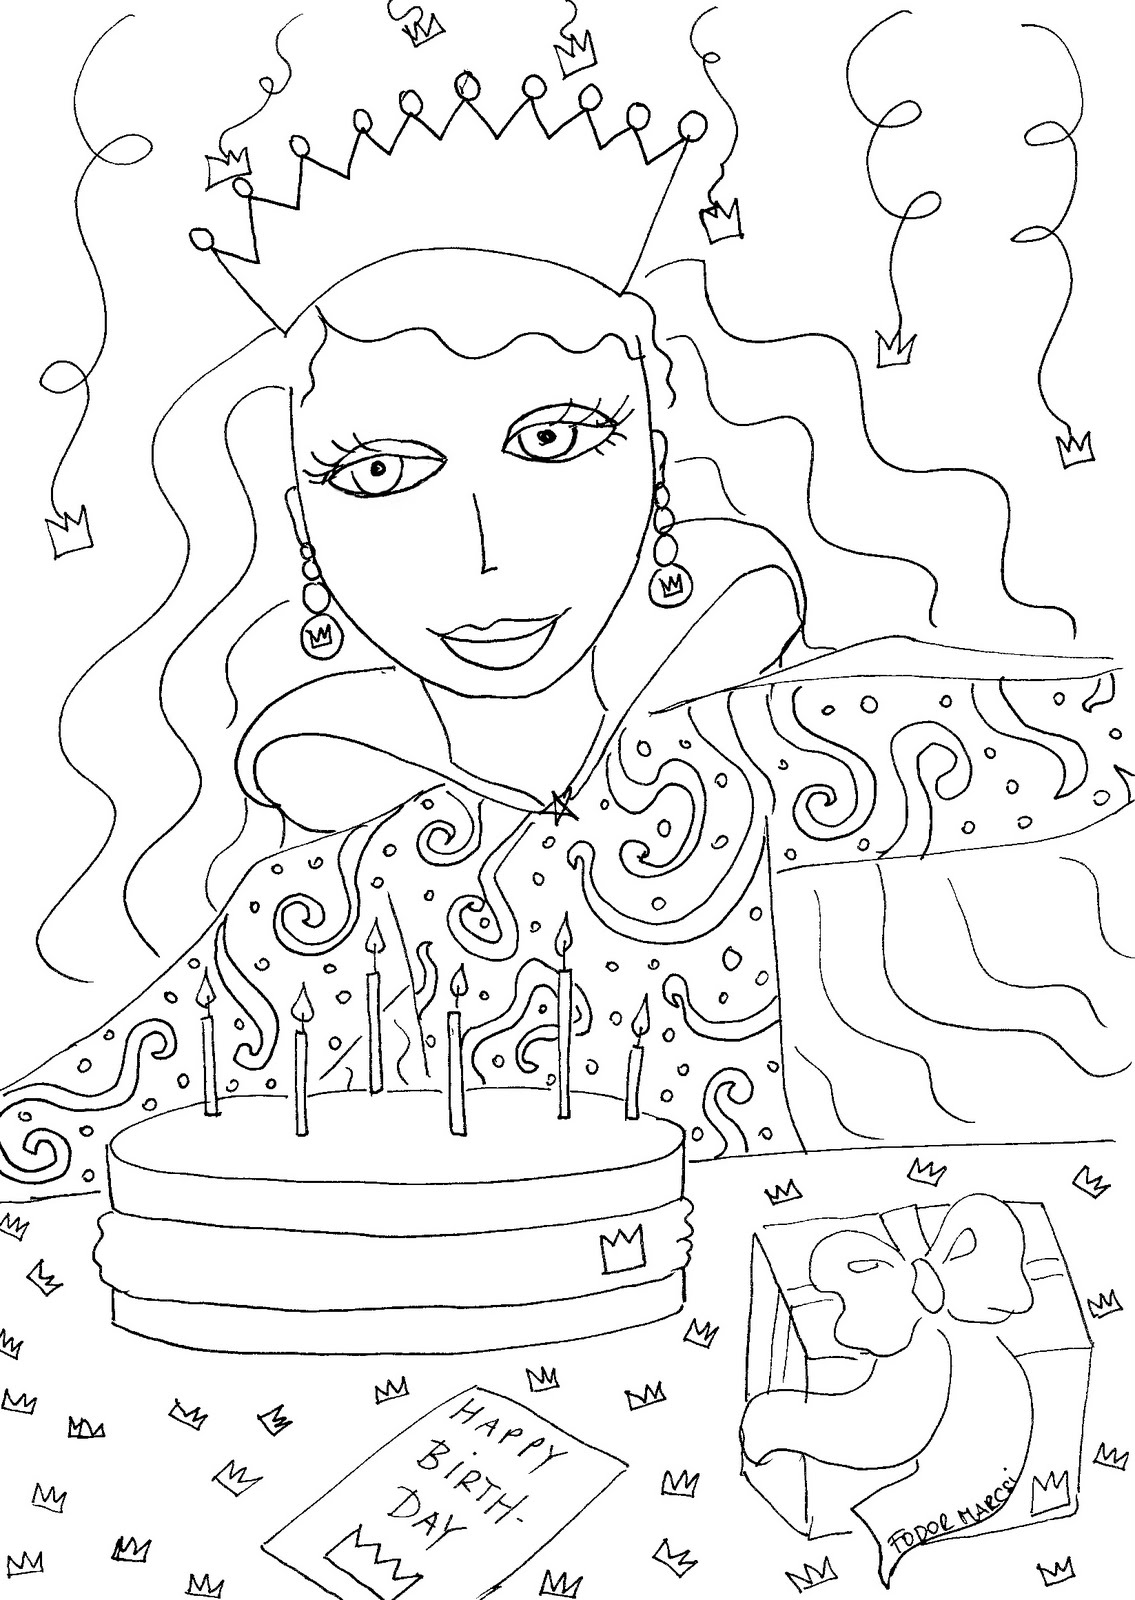 Happy Birthsday coloring on Pinterest Coloring Pages